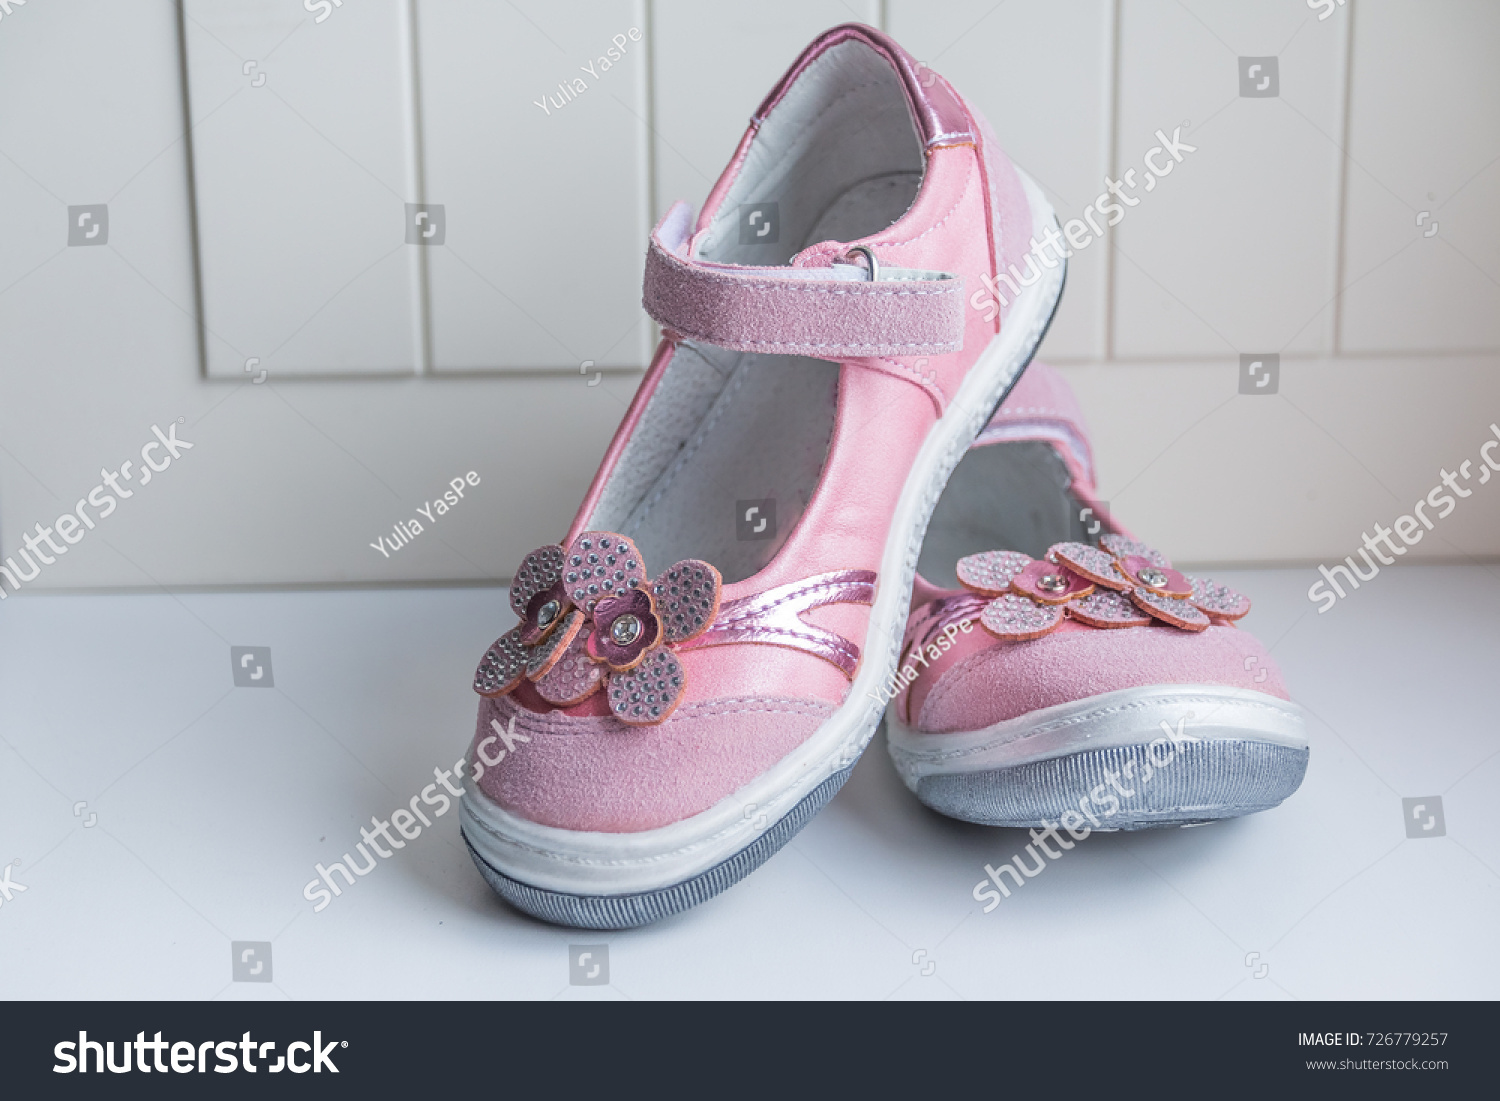 To acquire Baby stylish girl boots pictures trends